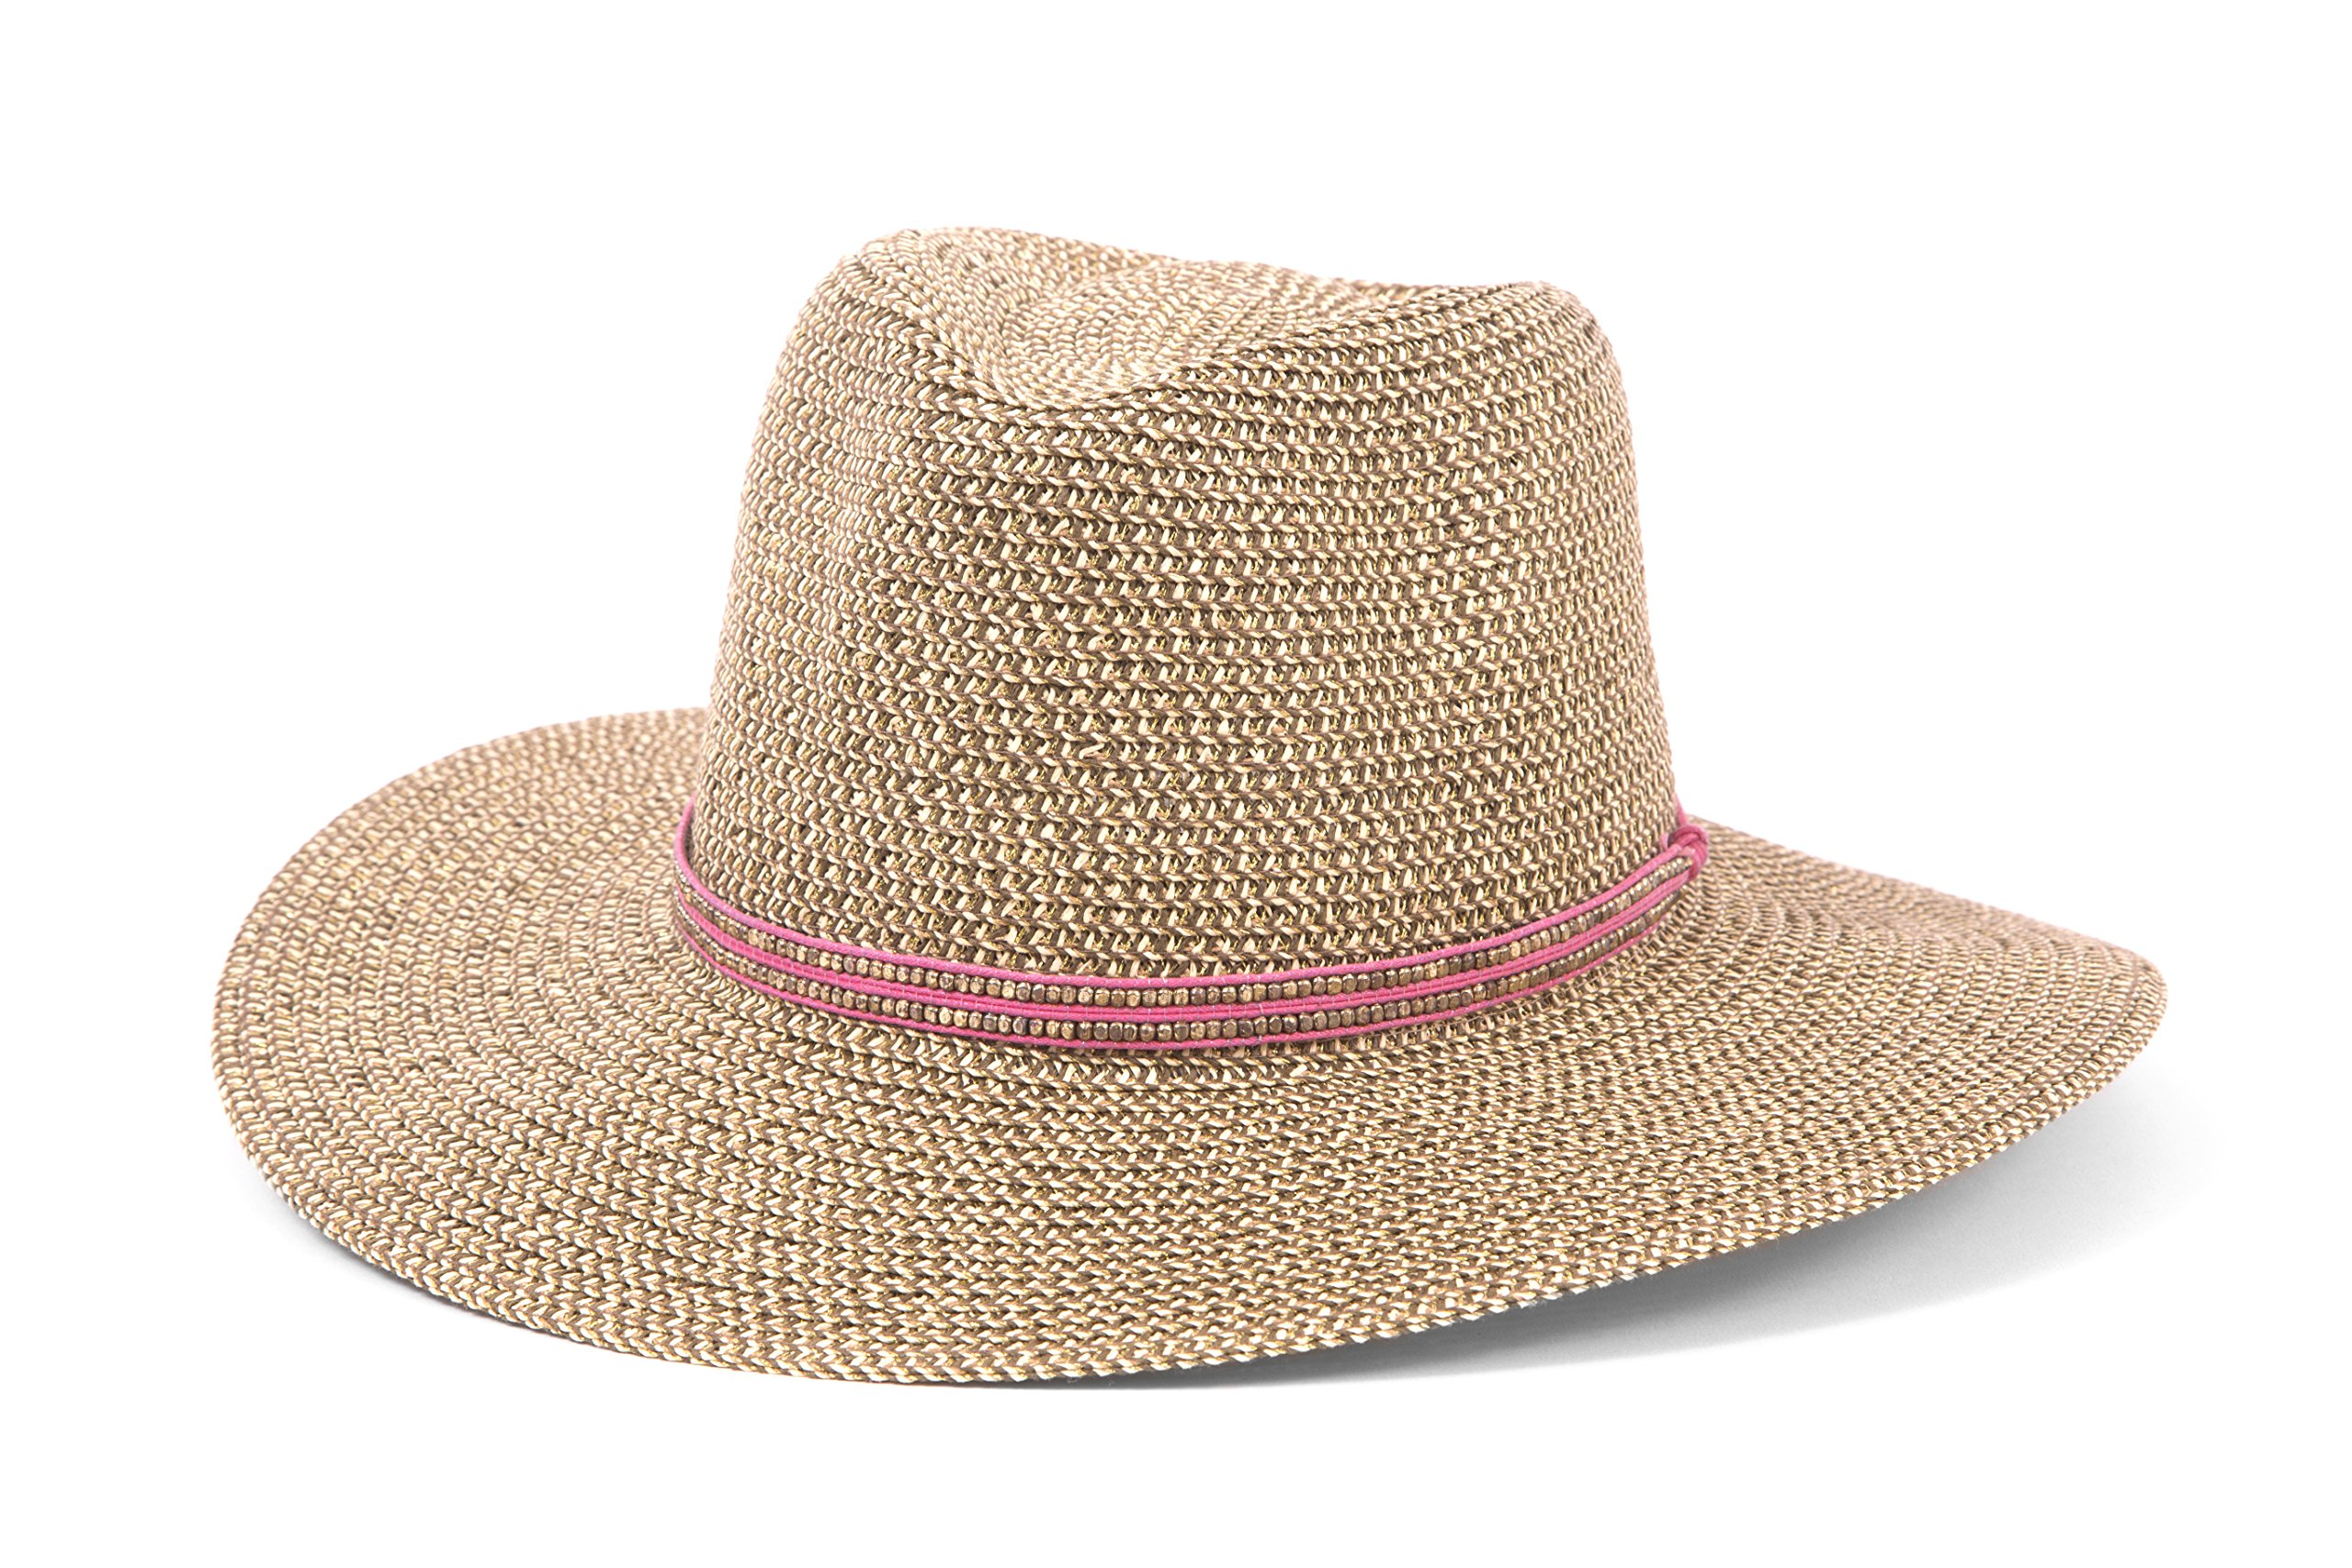 'ale by alessandra Women's Kenzie Toyo Straw Fedora Sunhat Packable and Adjustable, Pink, One Size